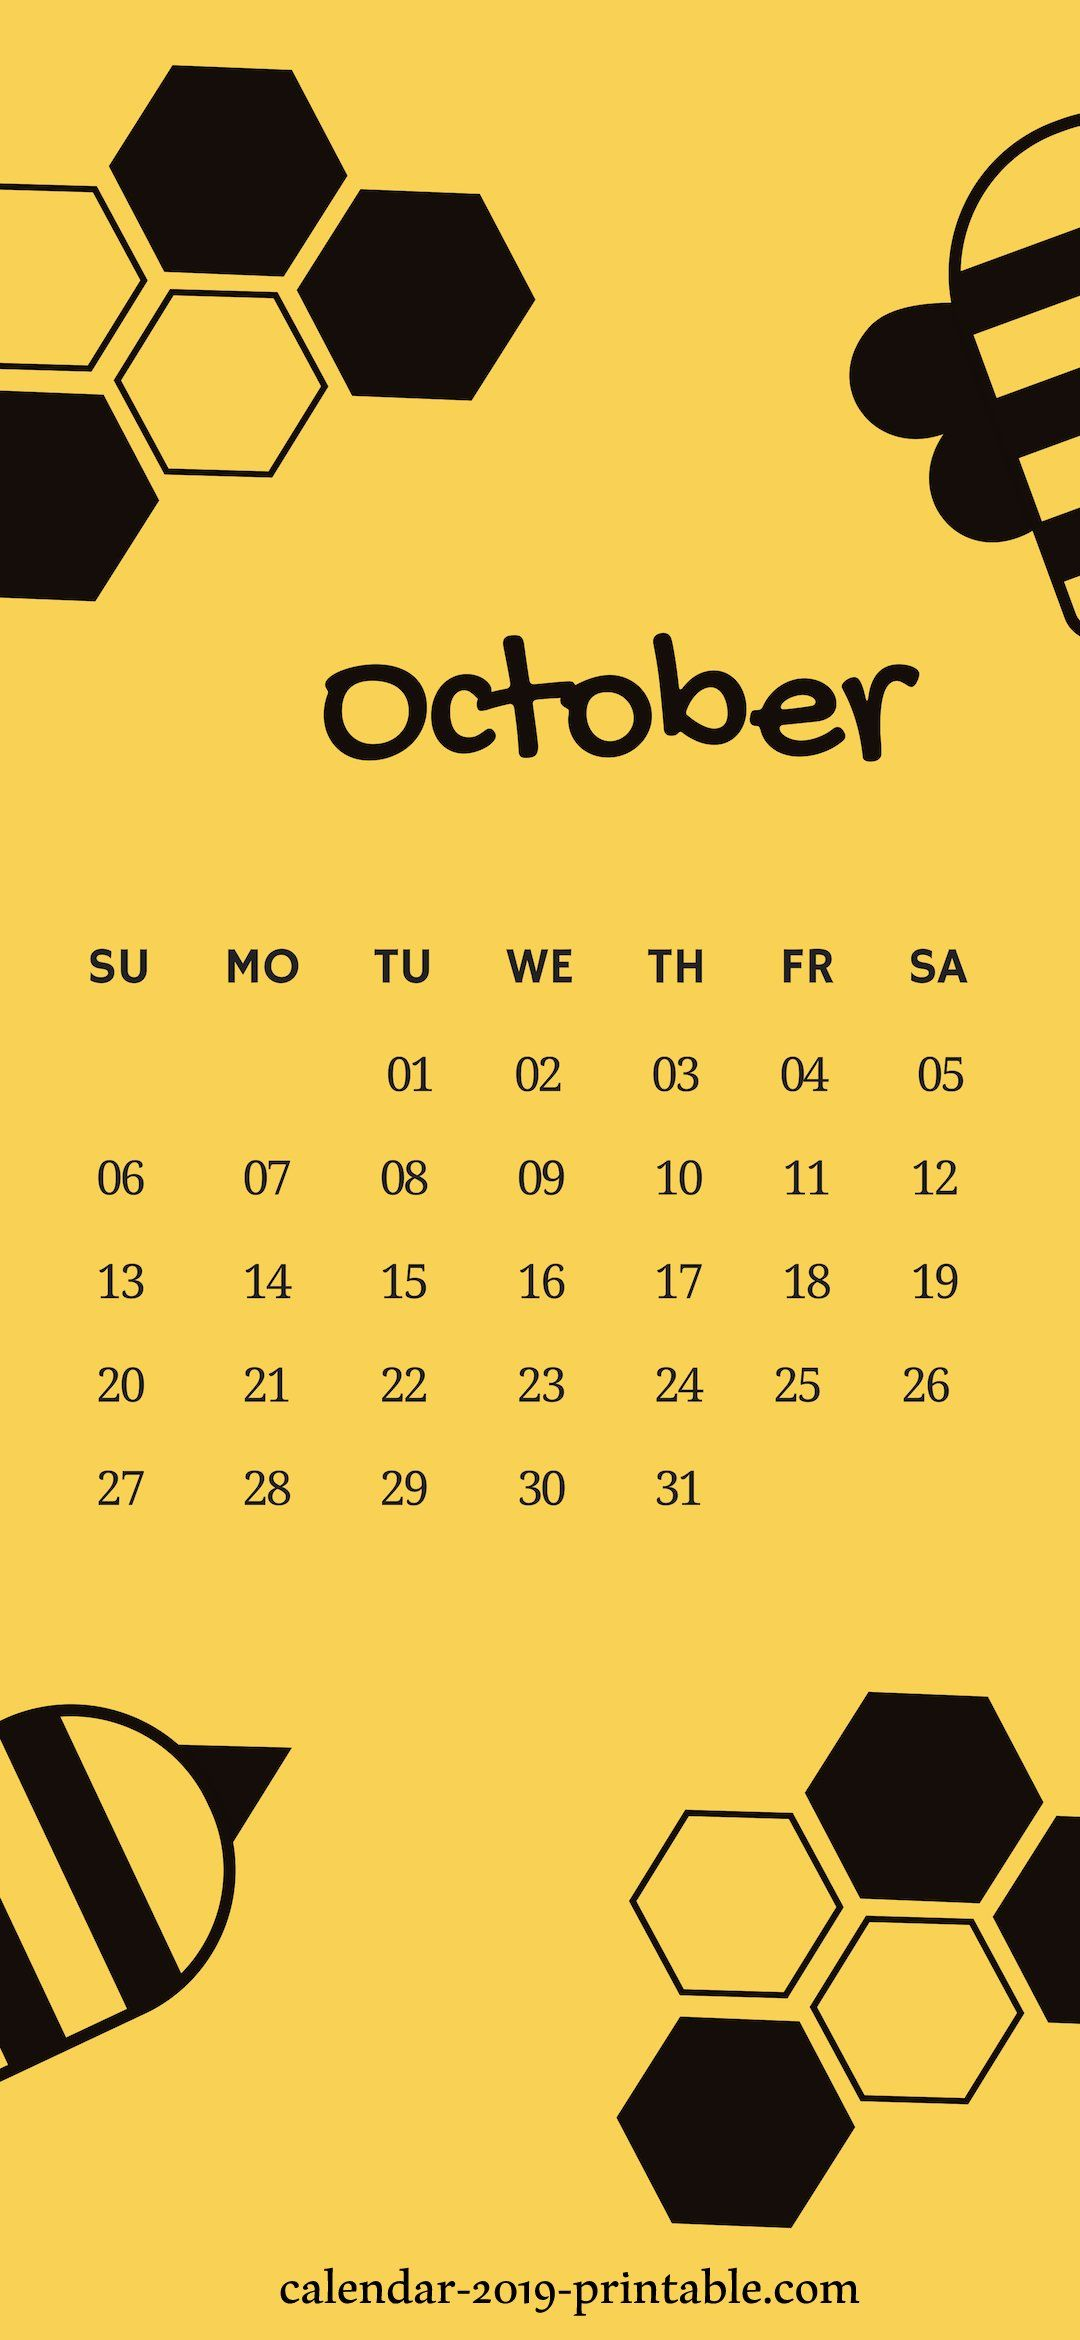 October 2019 iPhone Calendar Wallpapers (With images